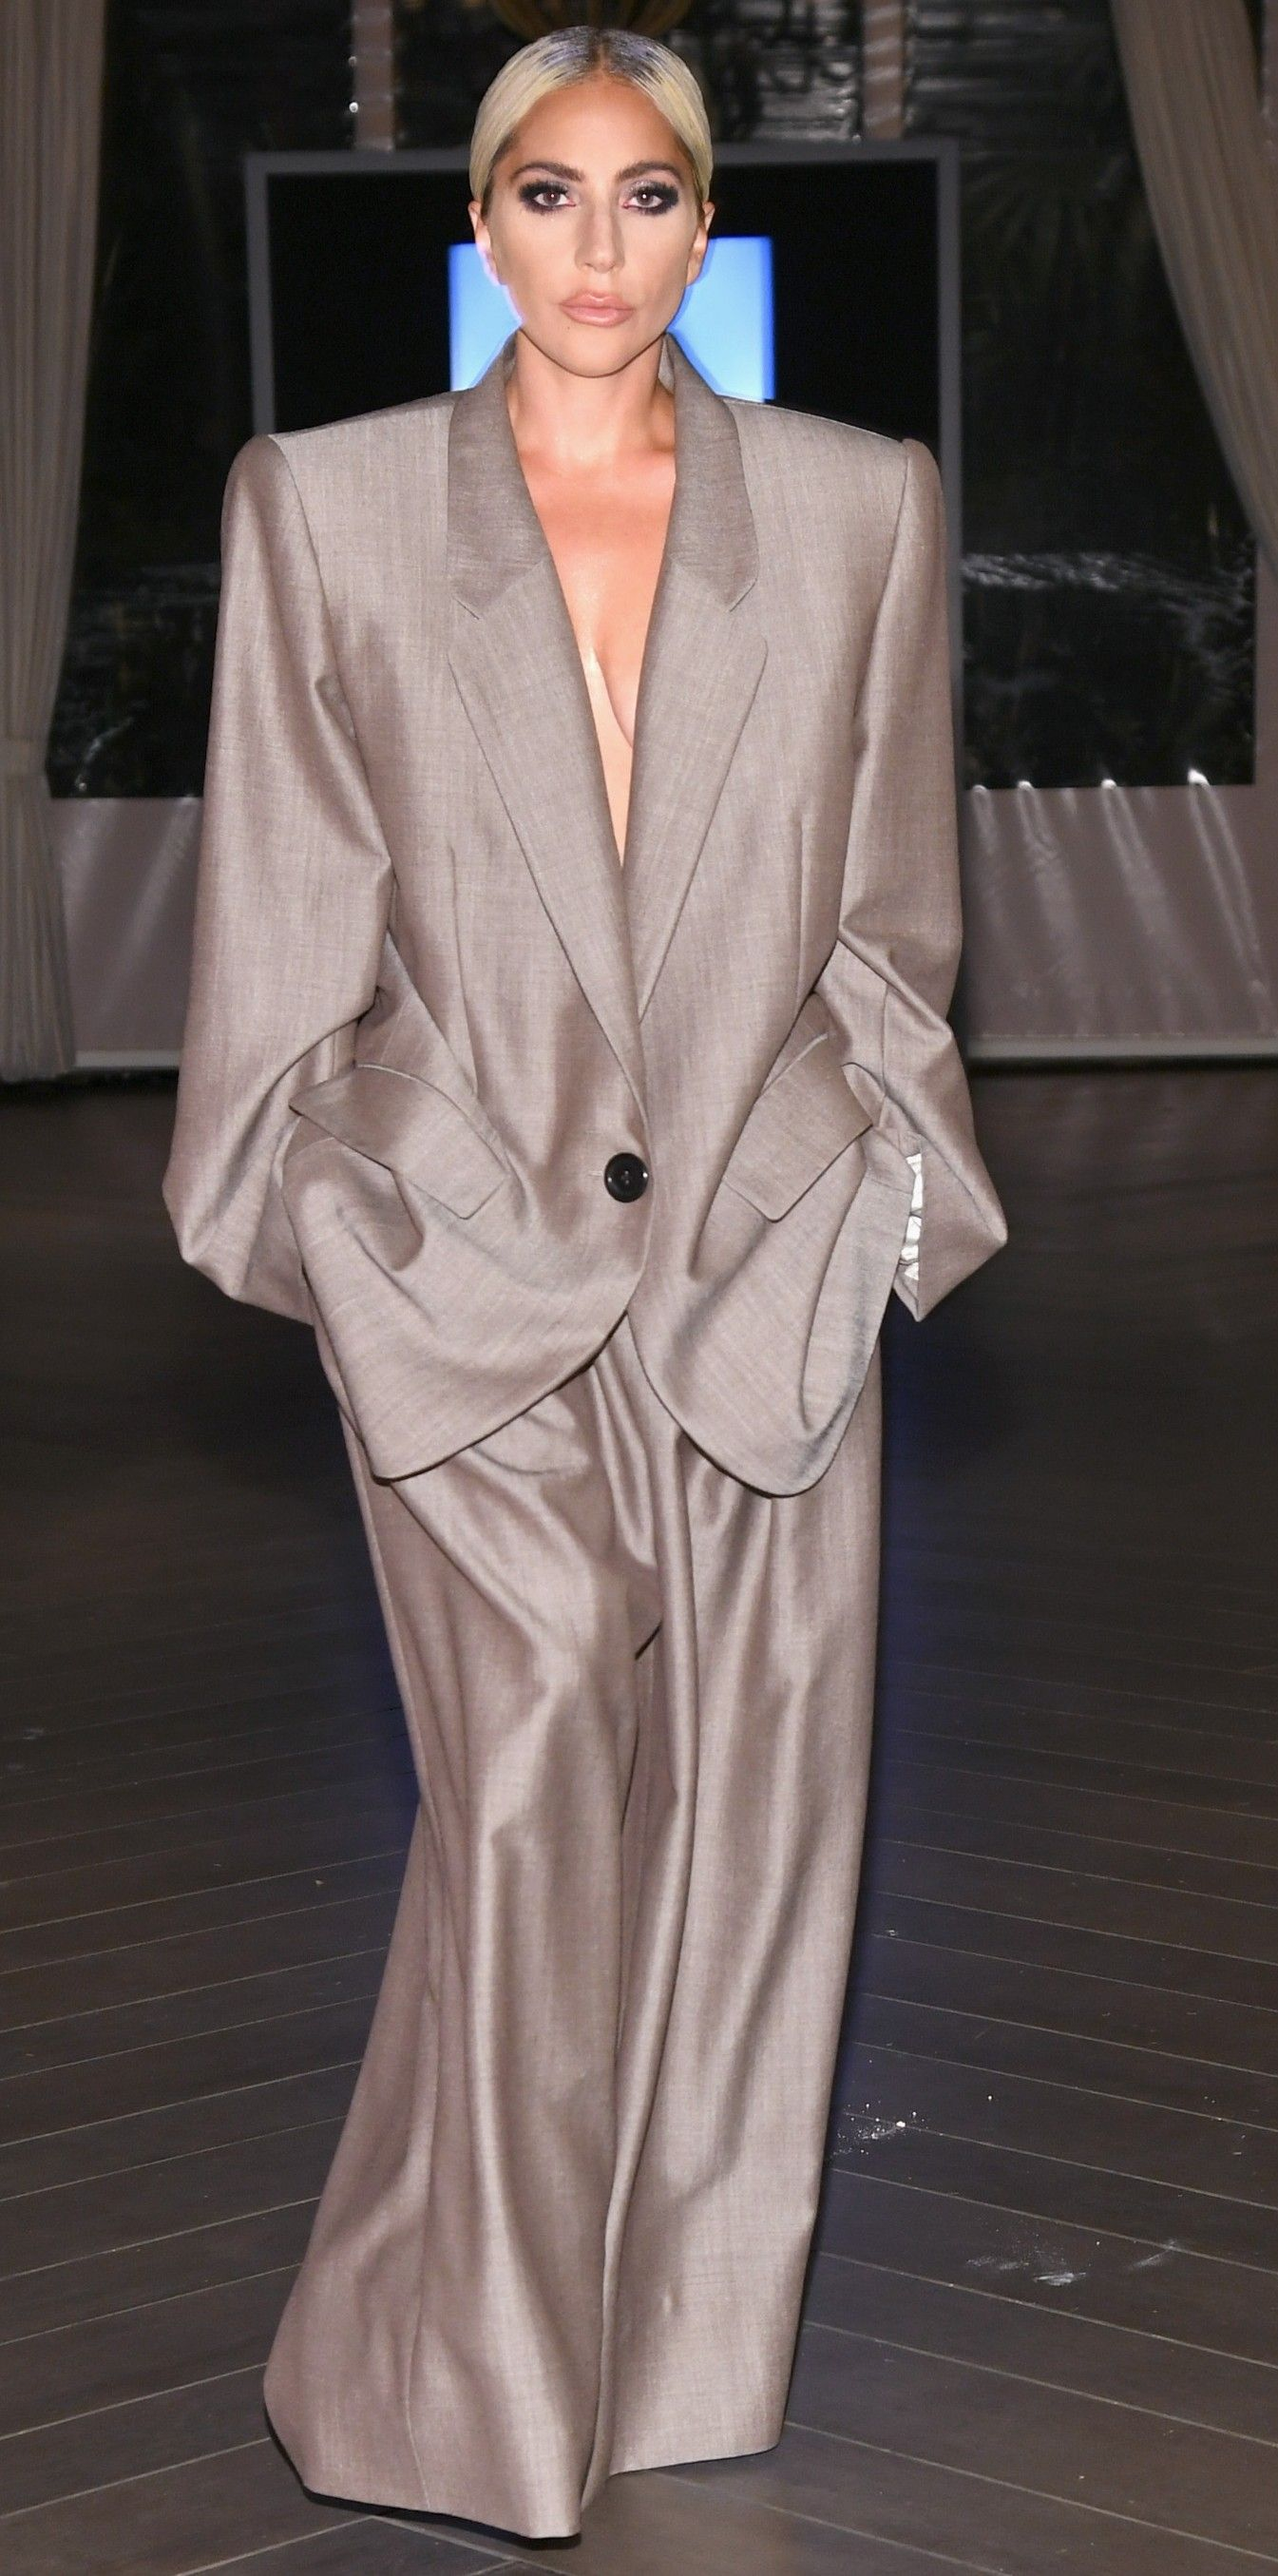 180aca3bdd9d Lady Gaga s Marc Jacobs Suit Takes Extreme Tailoring to Stylish New Levels